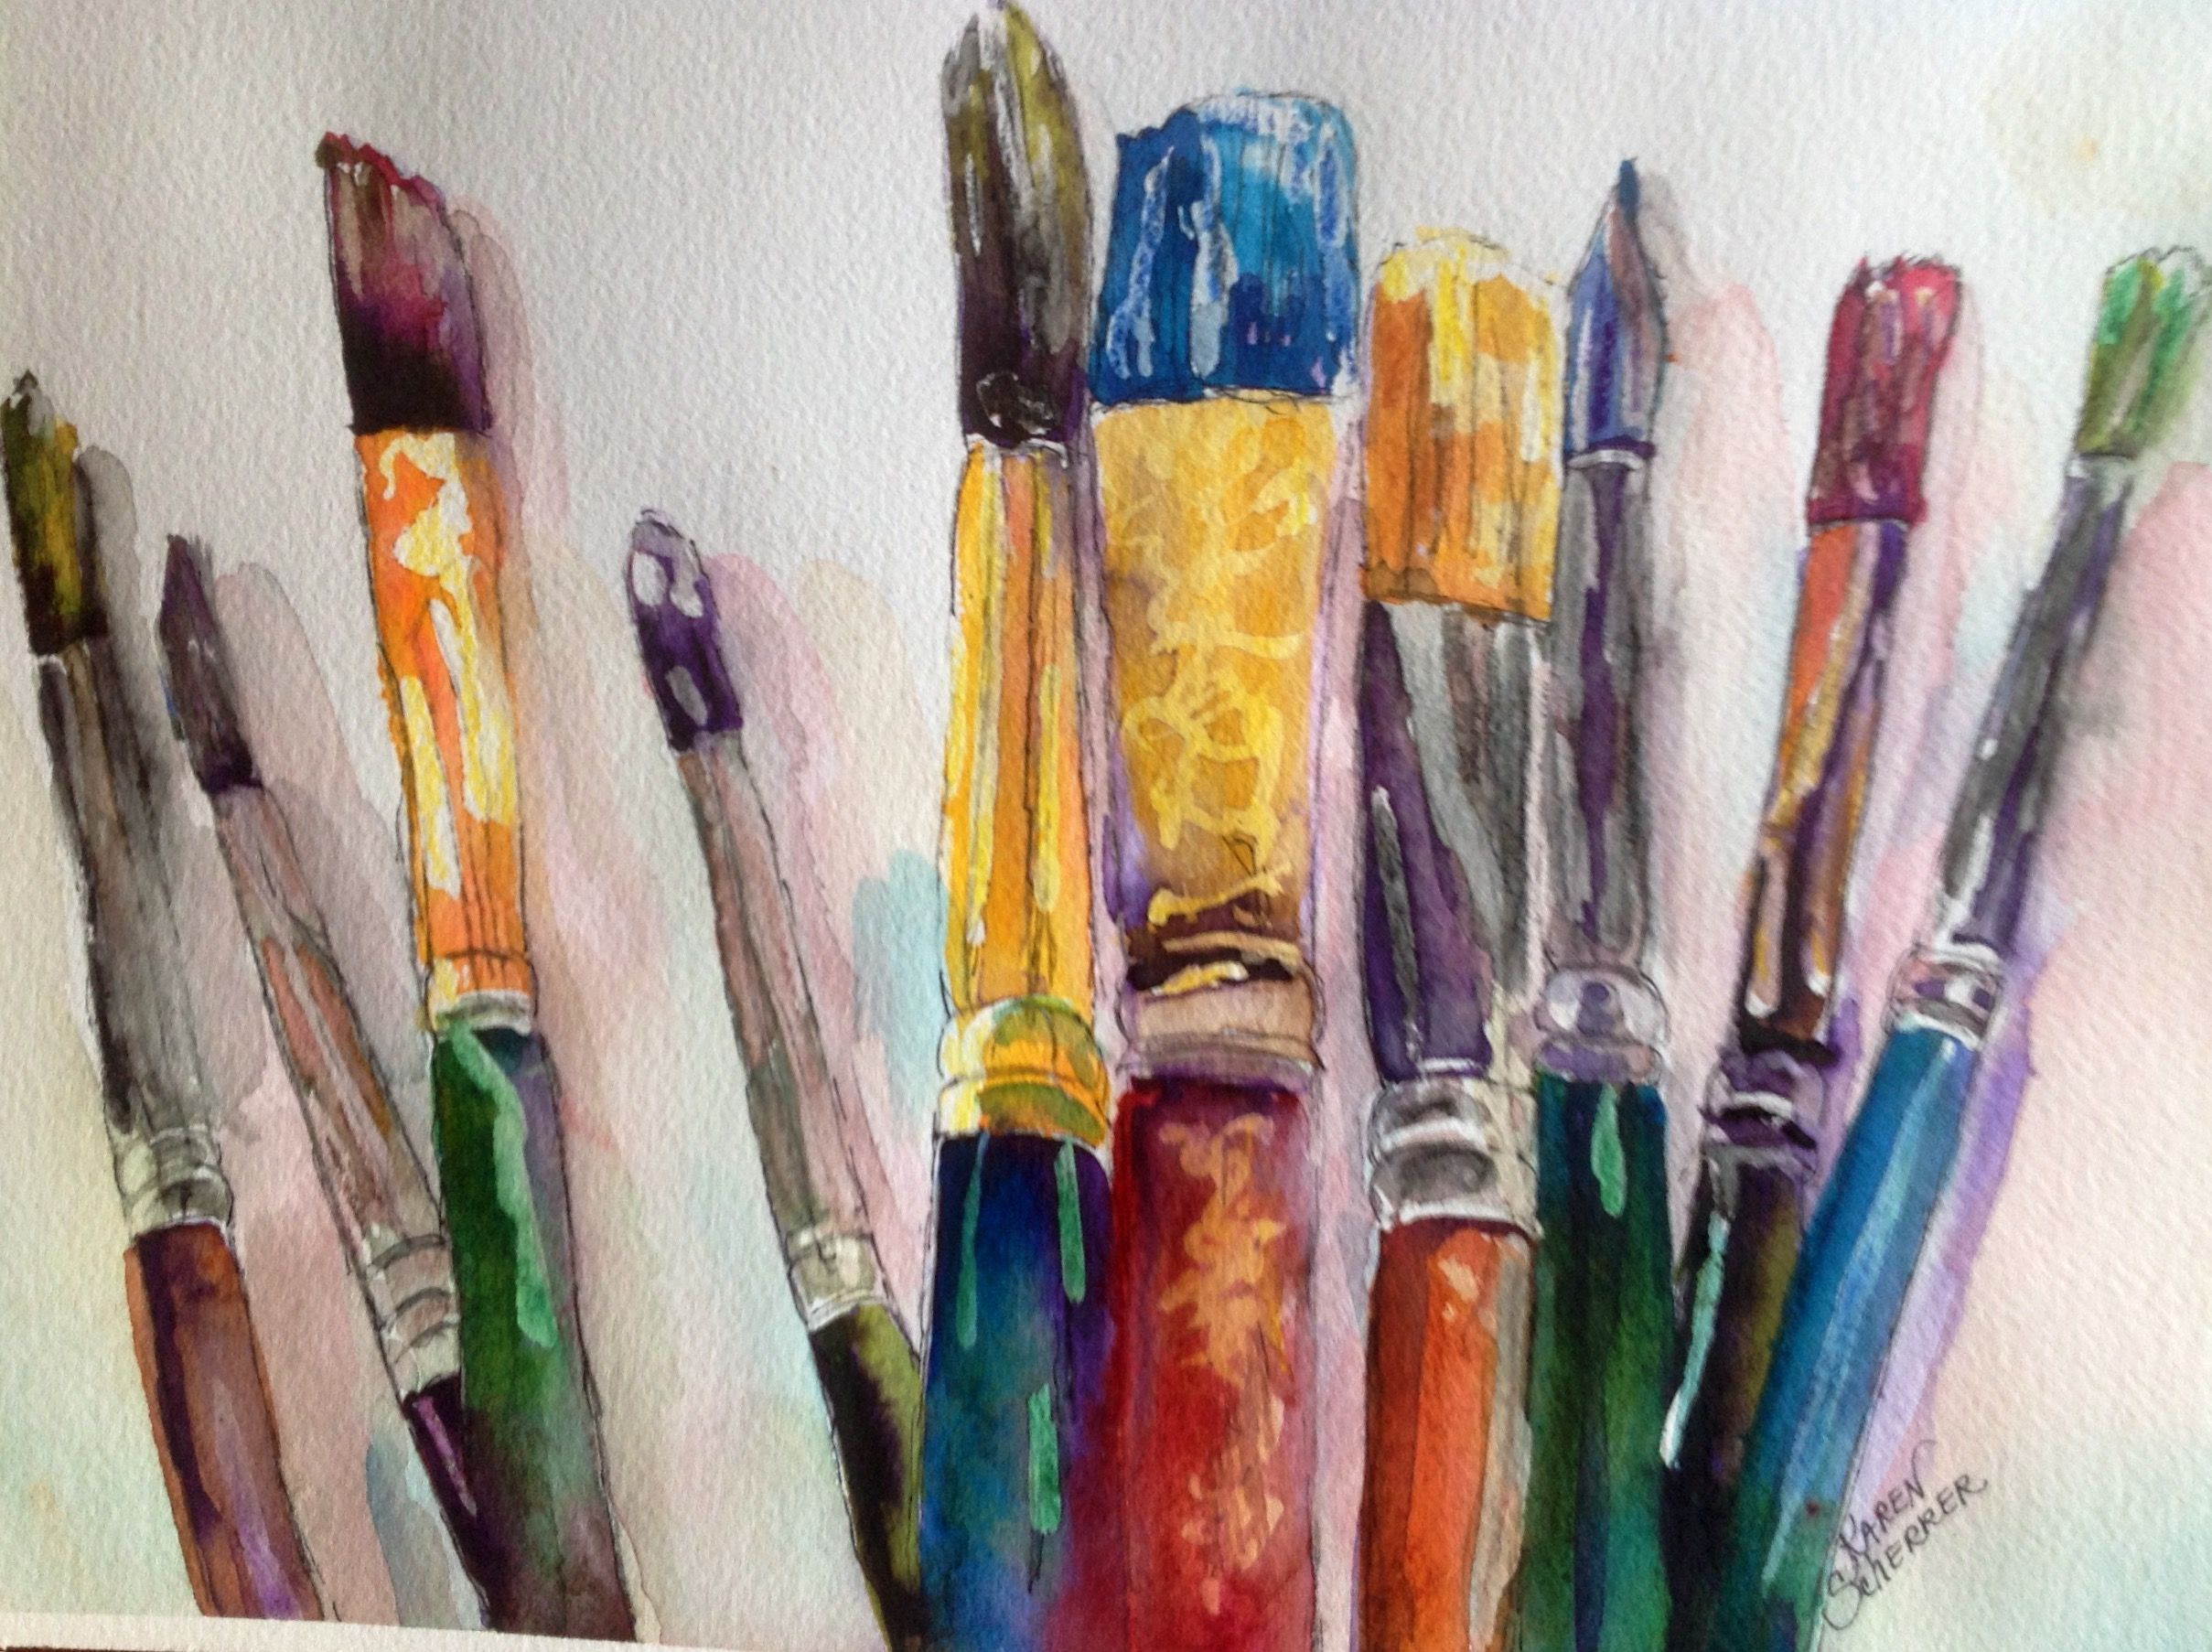 Watercolor artist in texas -  Bunches Of Brushes By Texas Watercolor Artist Karen Scherrer